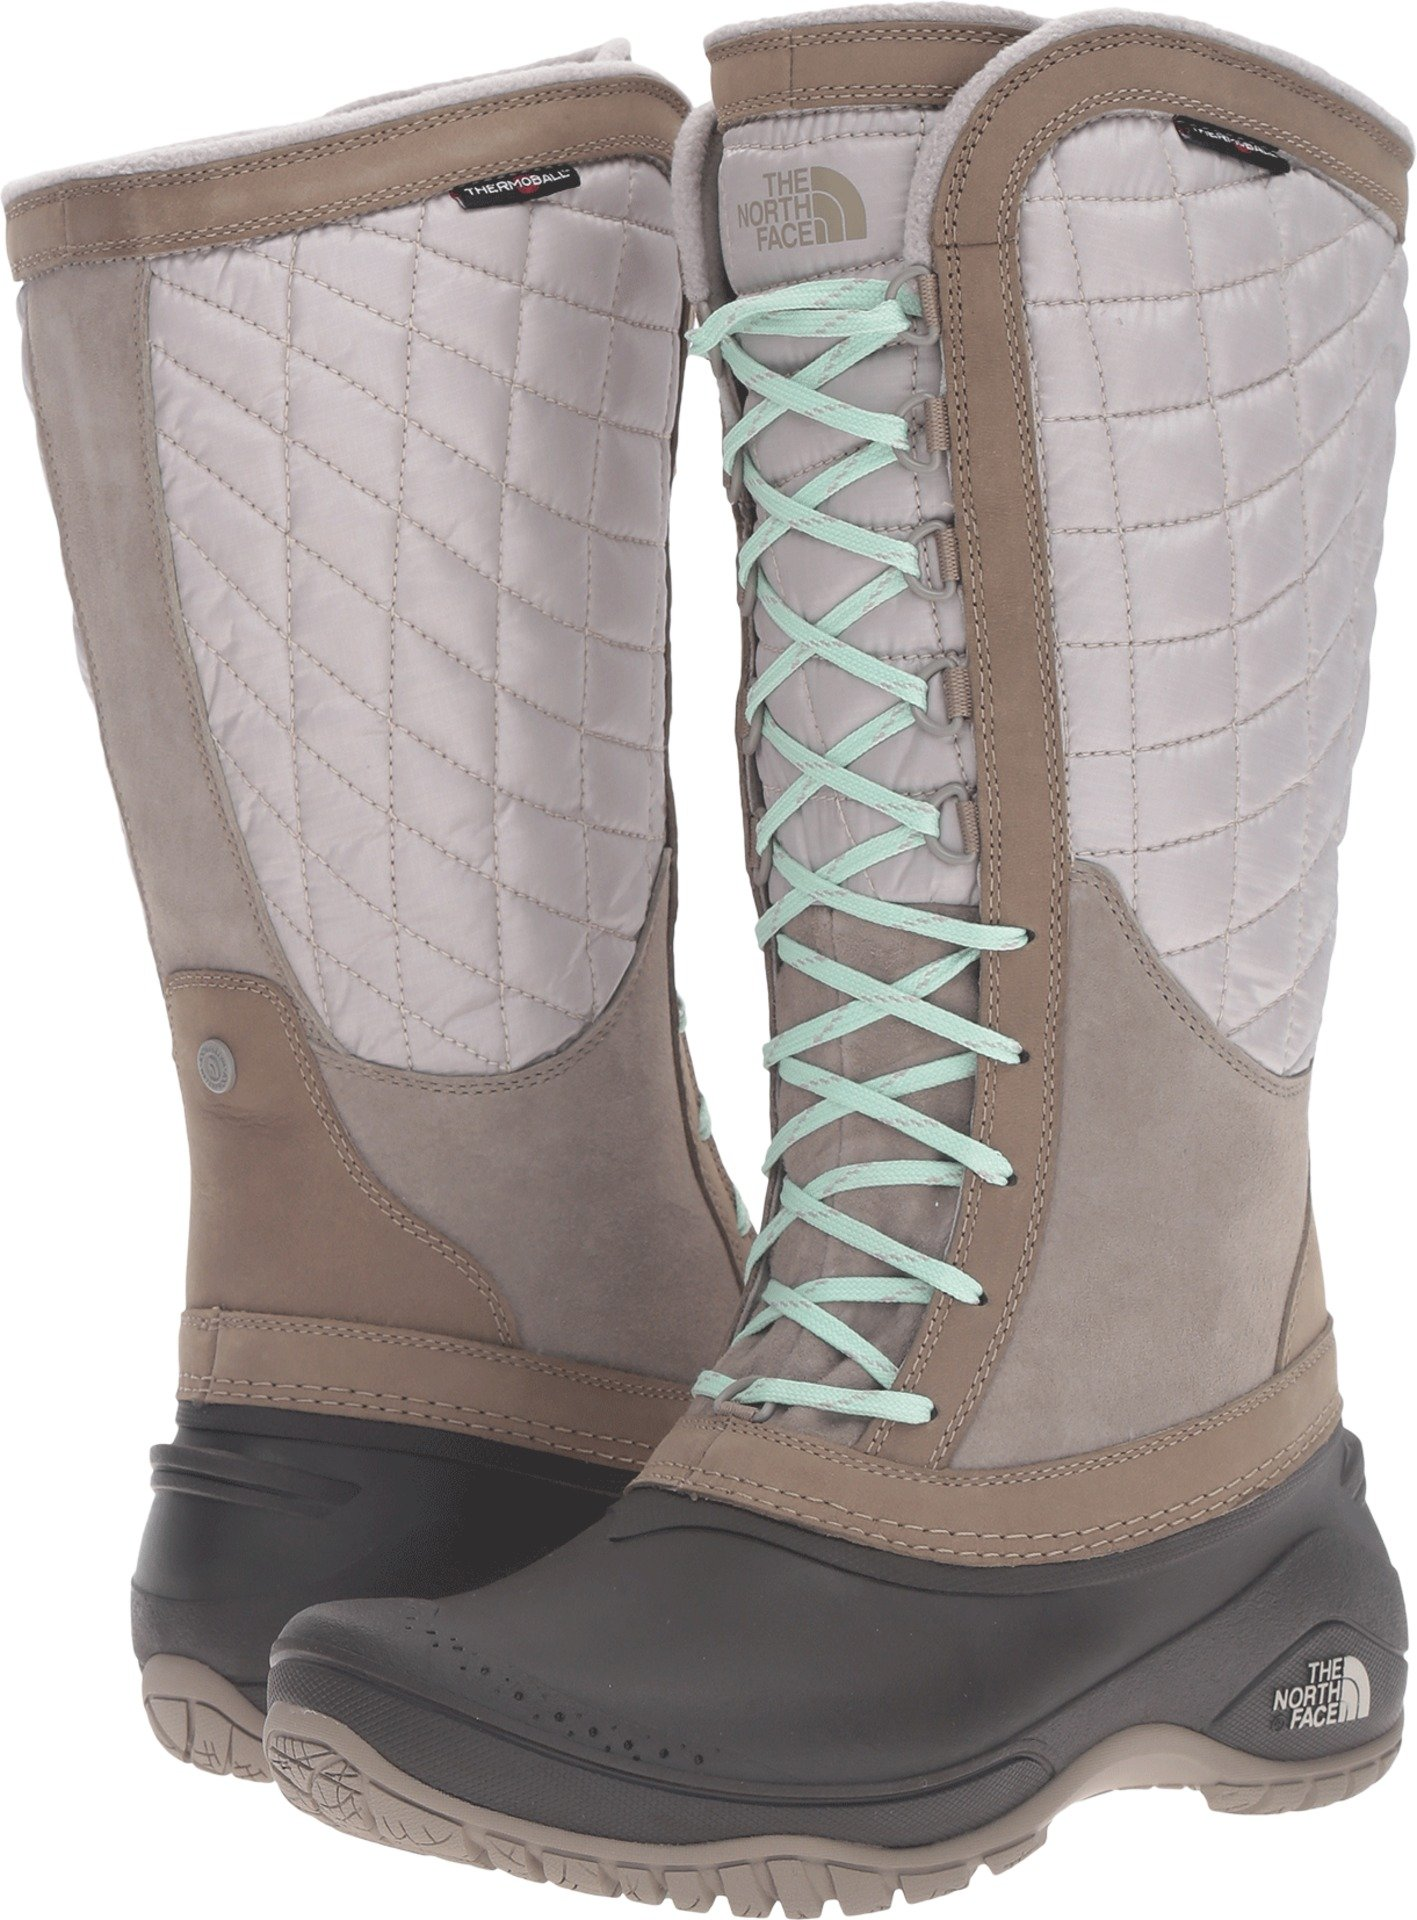 The North Face Thermoball Utility Boot Women's Split Rock Brown/Subtle Green 8